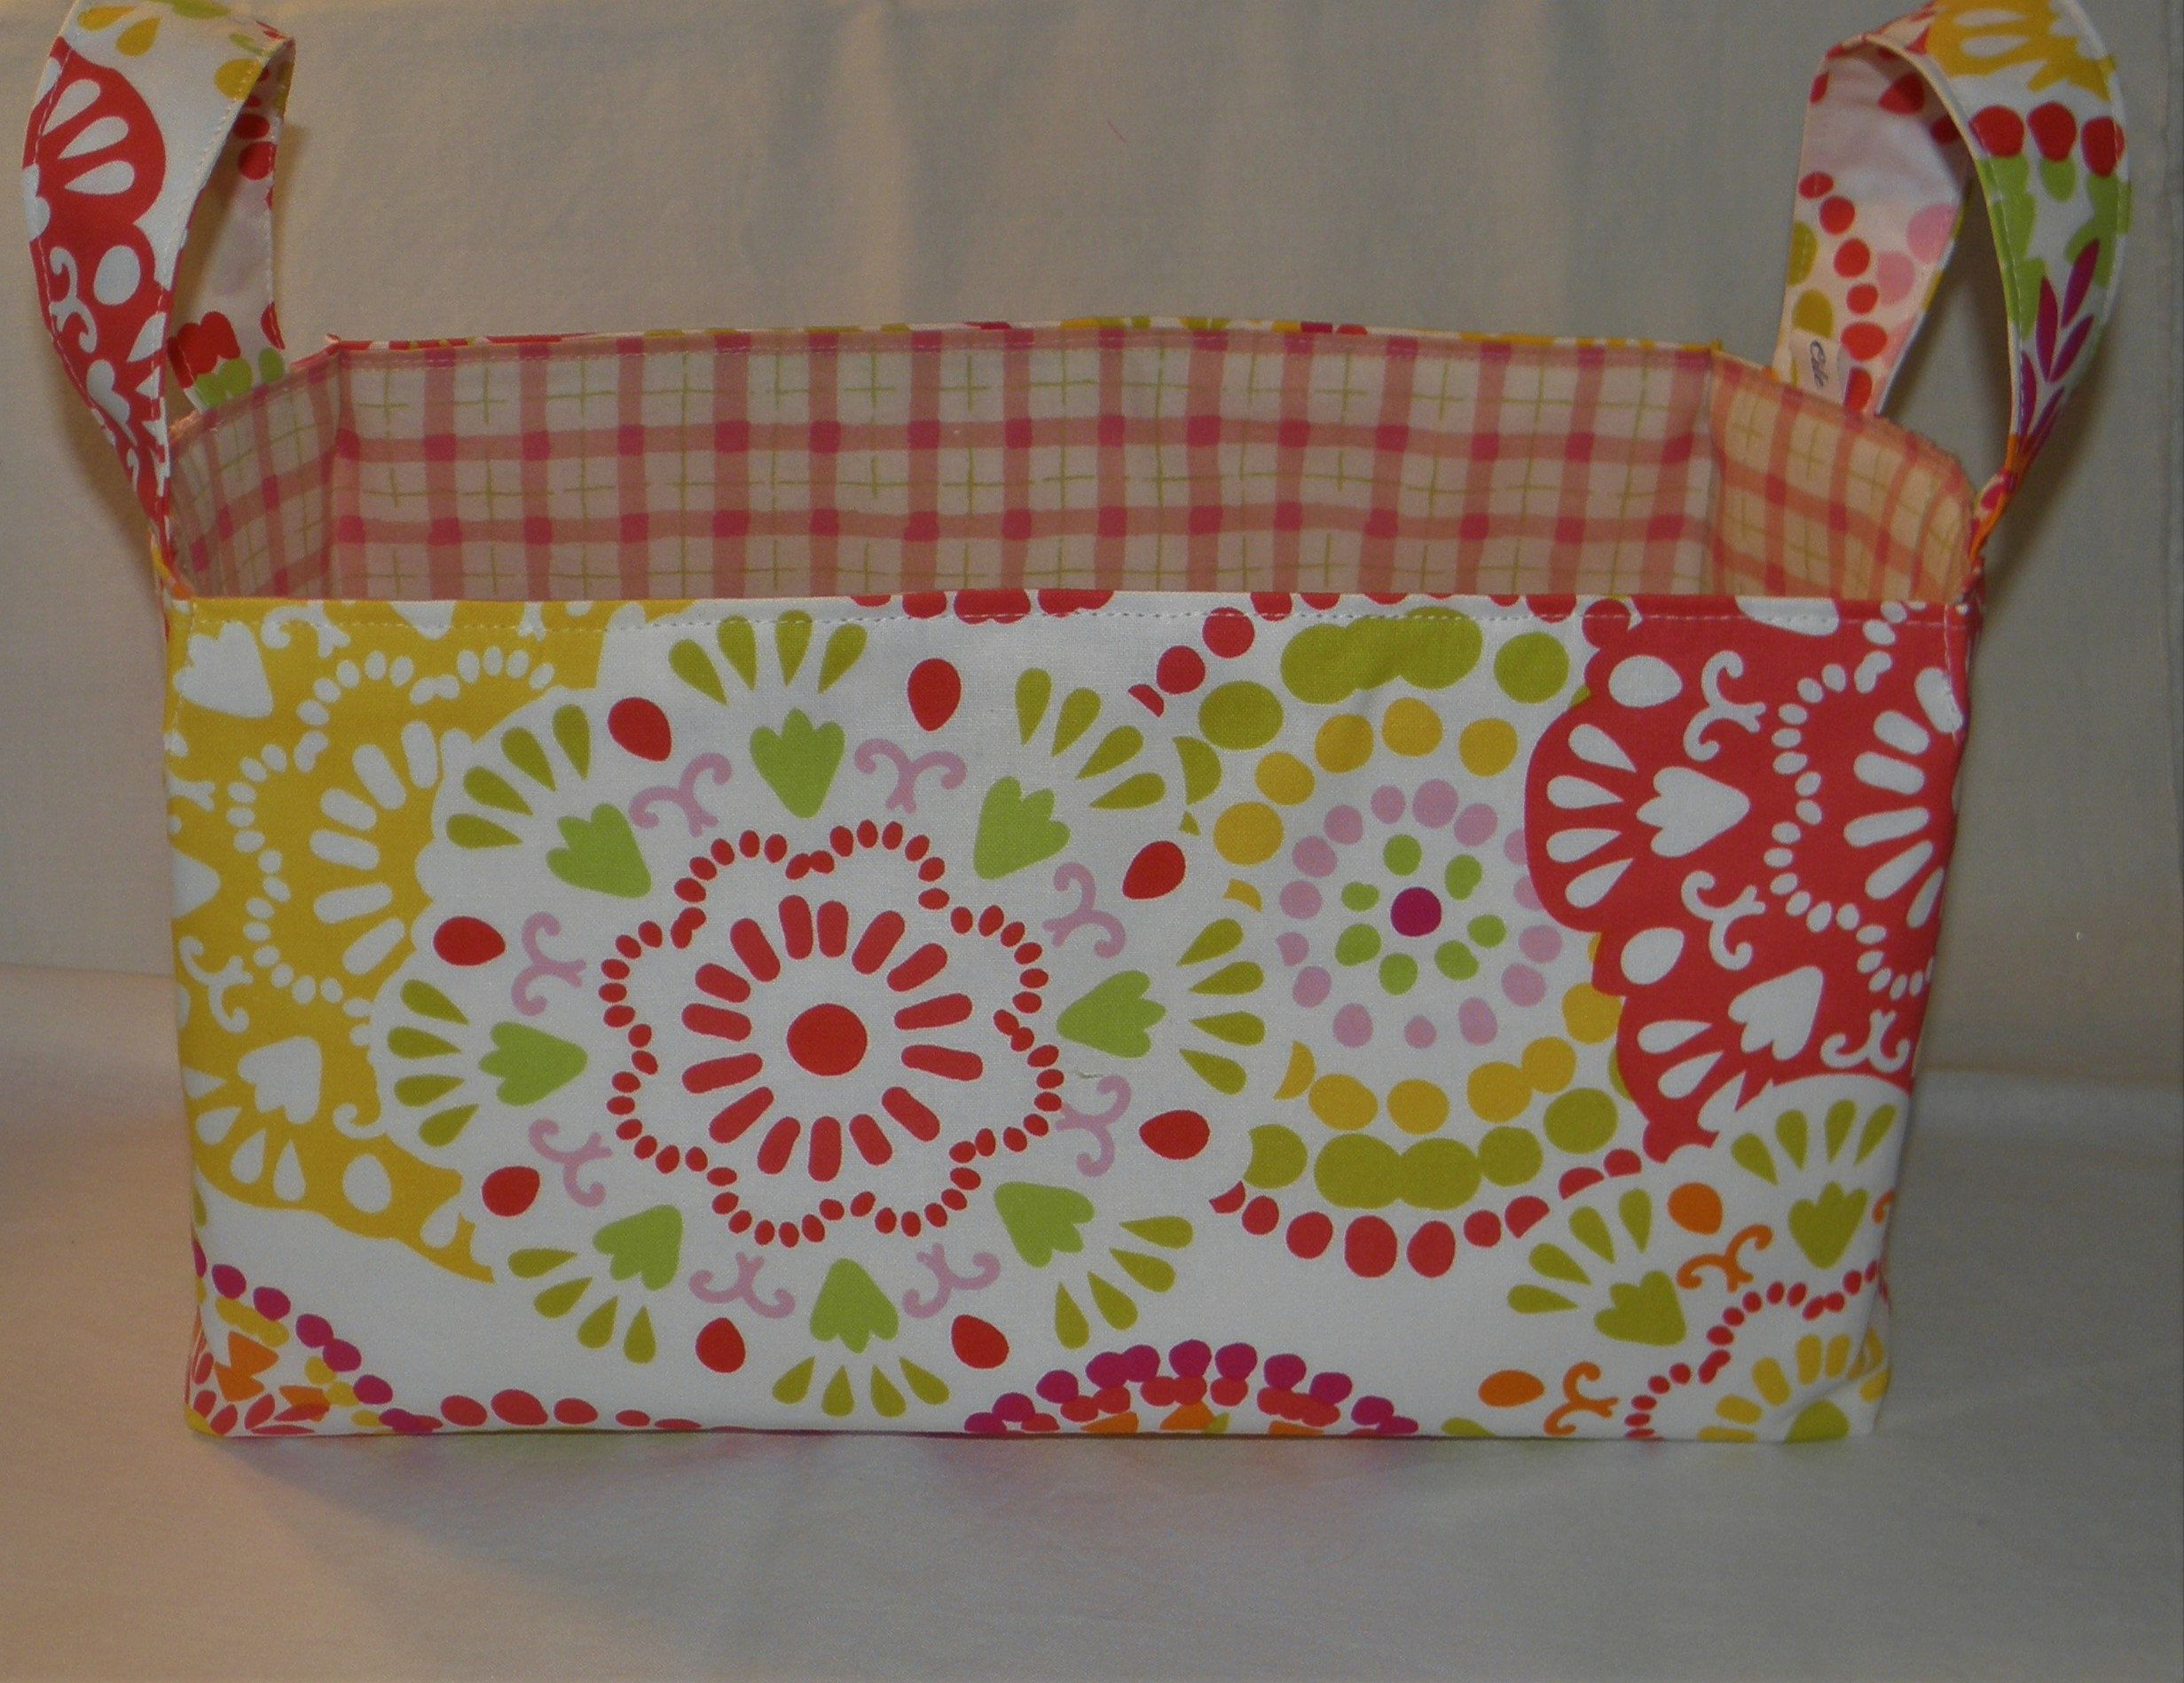 Fabric Basket with Handles, Stylish Storage Basket, Reuseable Gift Basket, Baby or Bridal Shower, Mother's Day, Gift for Her, Ready to Ship